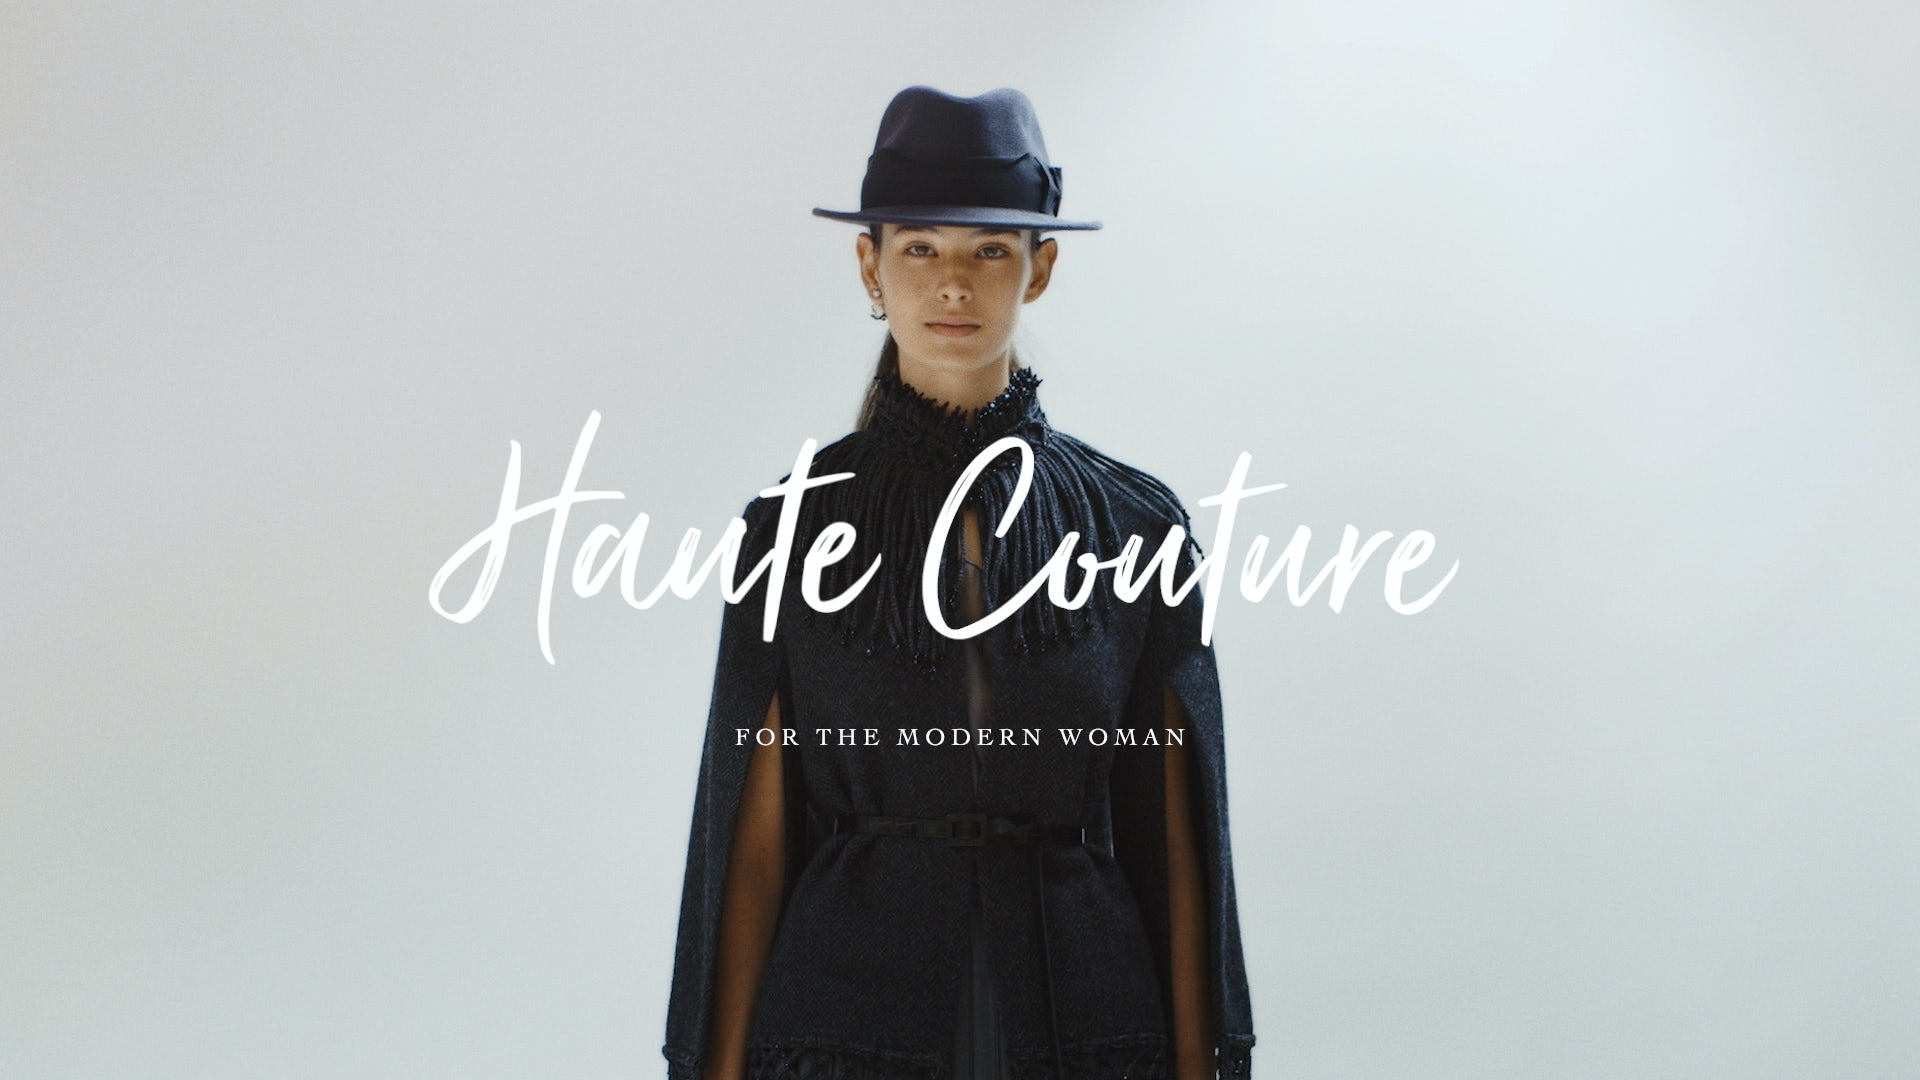 Article cover of Haute Couture for the Modern Woman